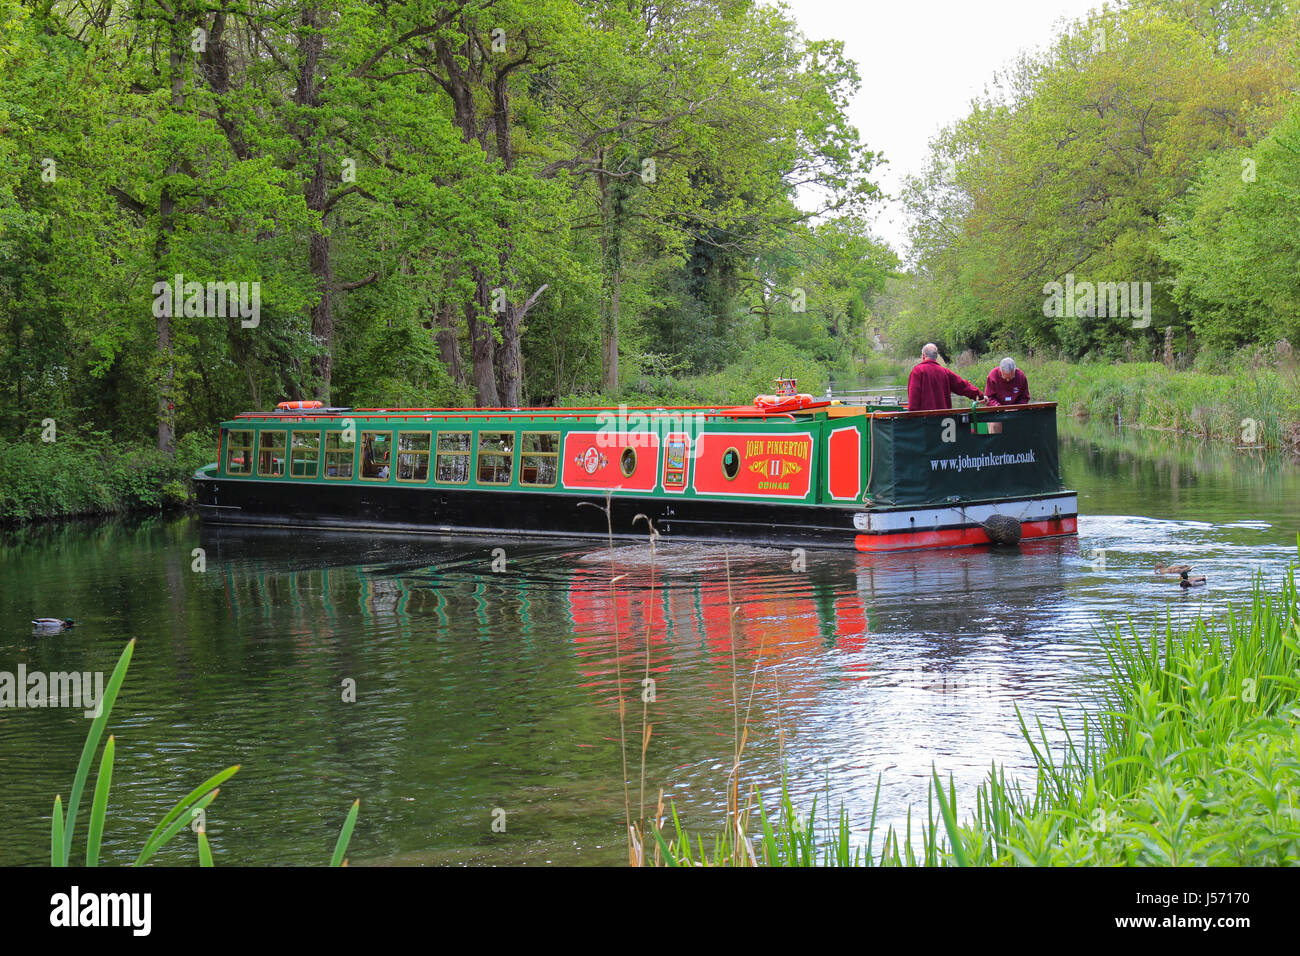 Turning a canal boat on the Basingstoke Canal, Odiham, Hampshire UK - Stock Image